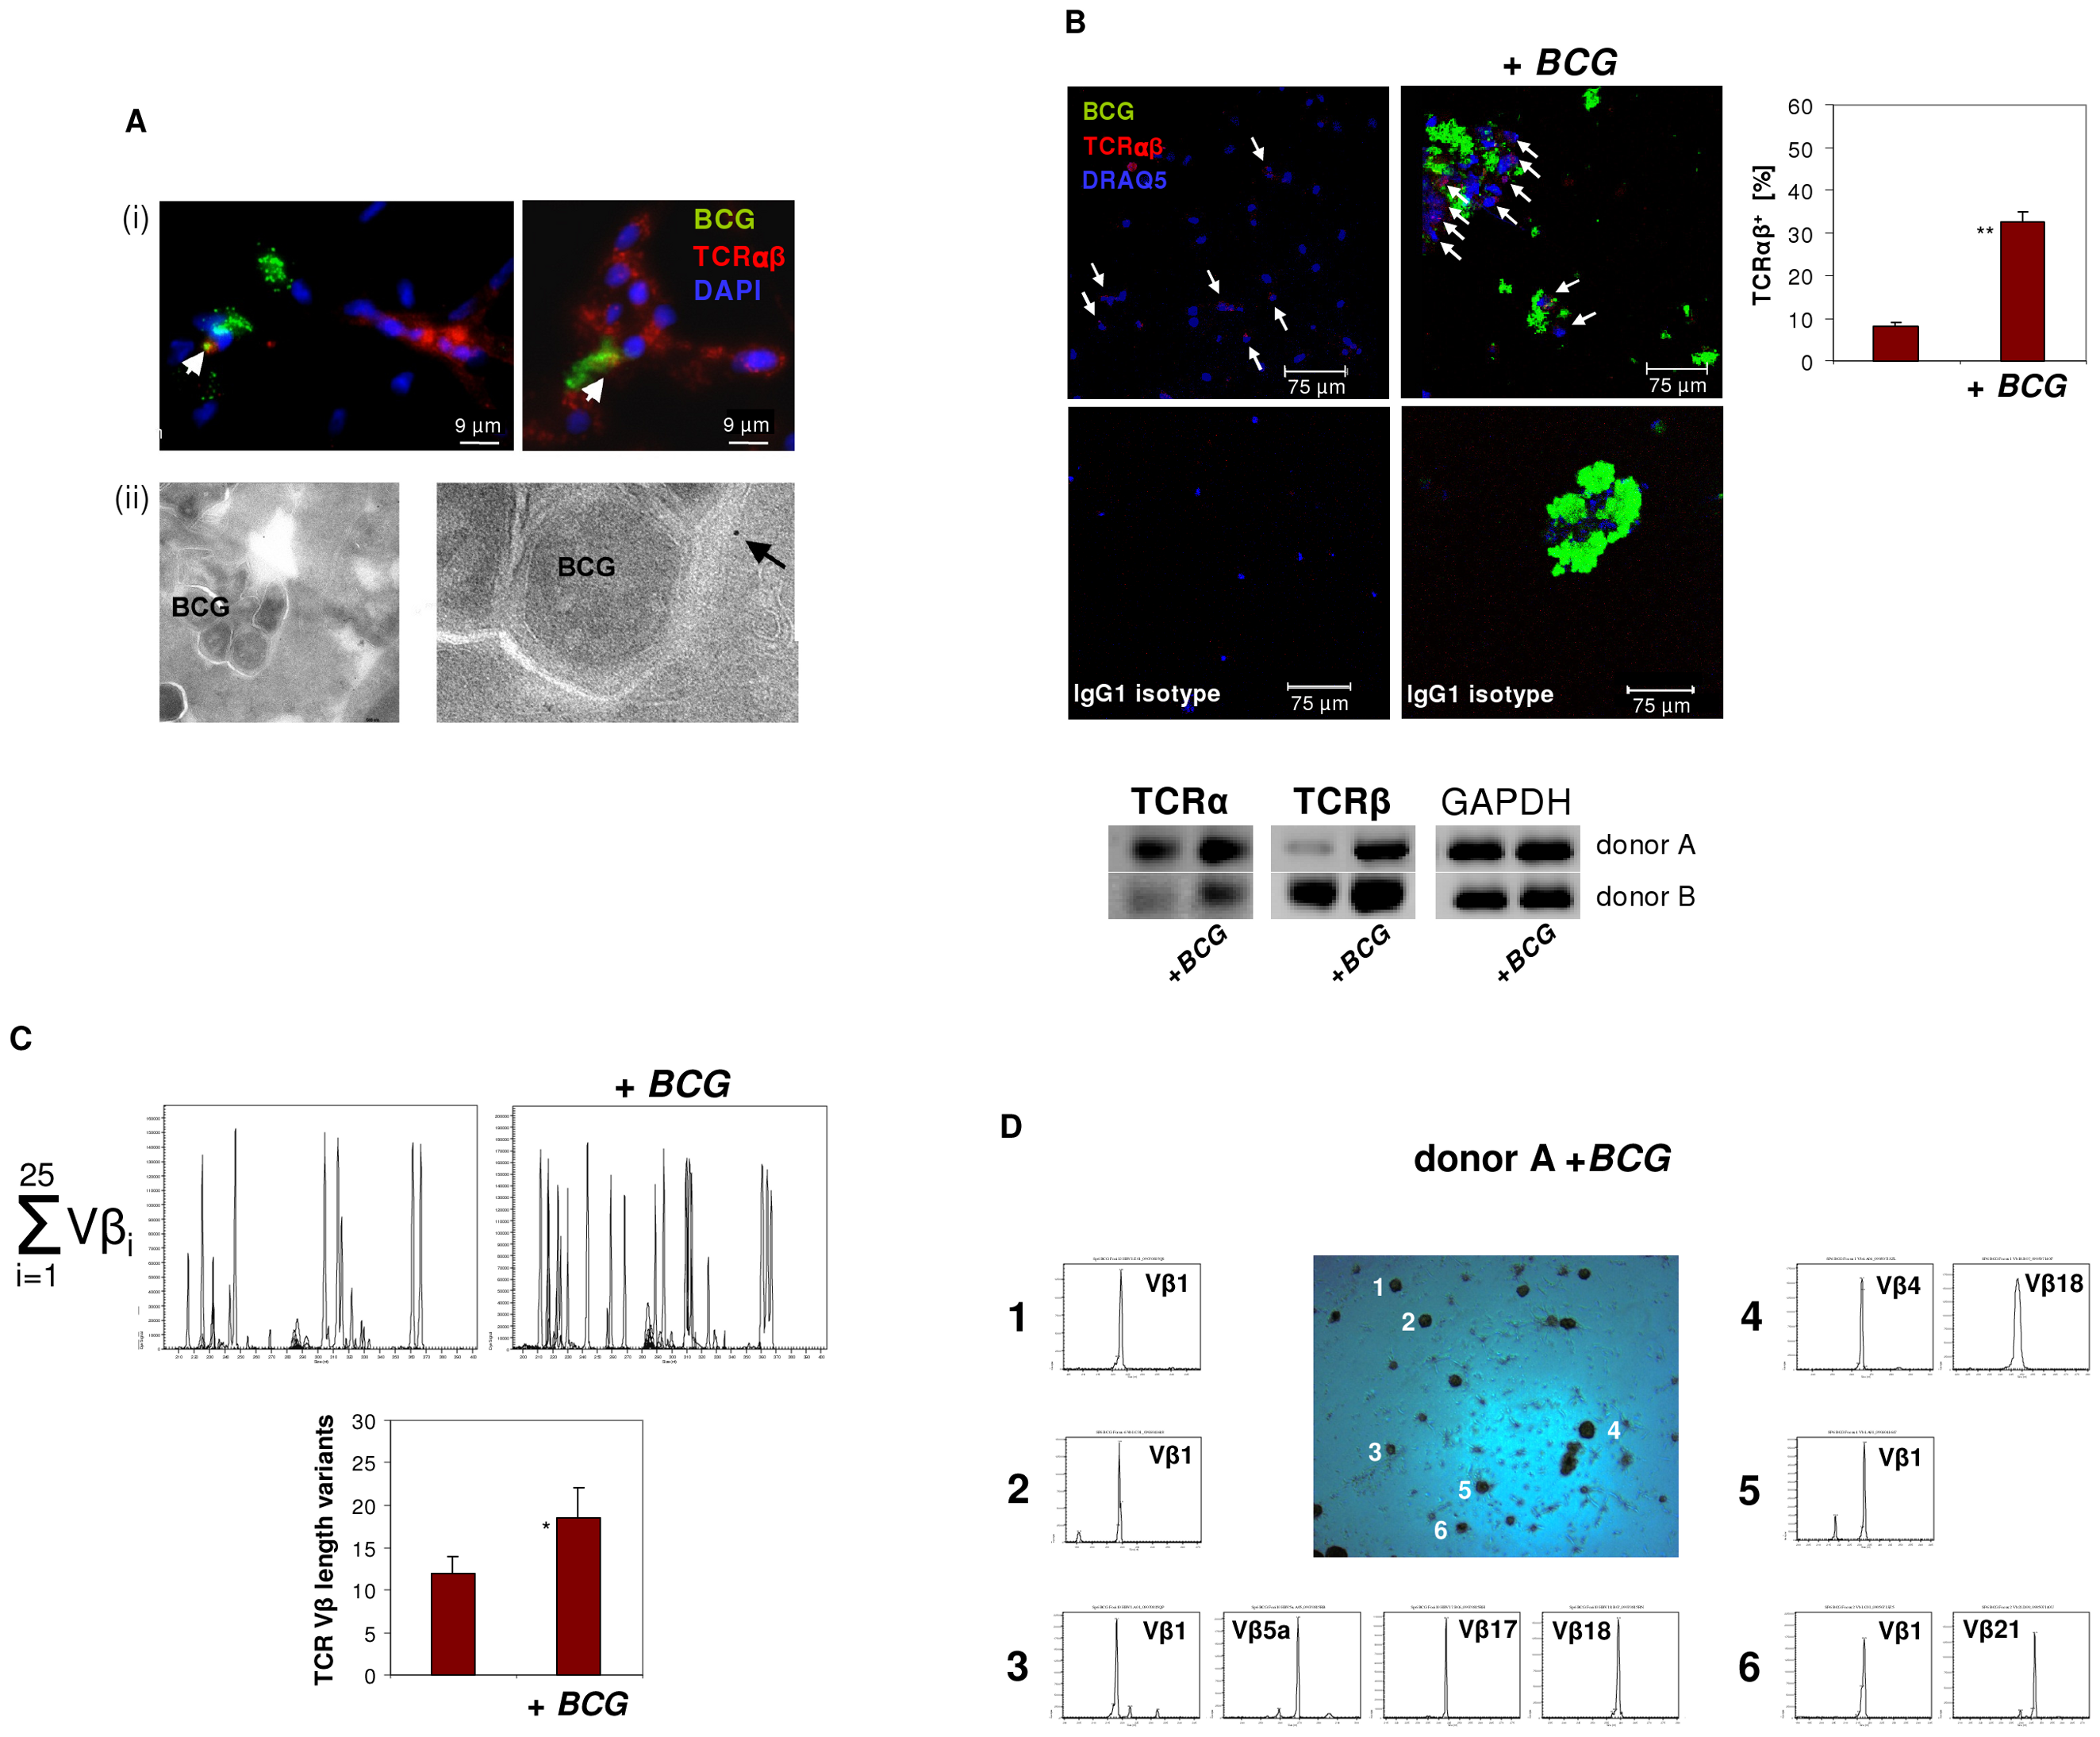 Infection of macrophages with <i>M. bovis BCG</i> induces TCRαβ expression <i>in vitro</i>.